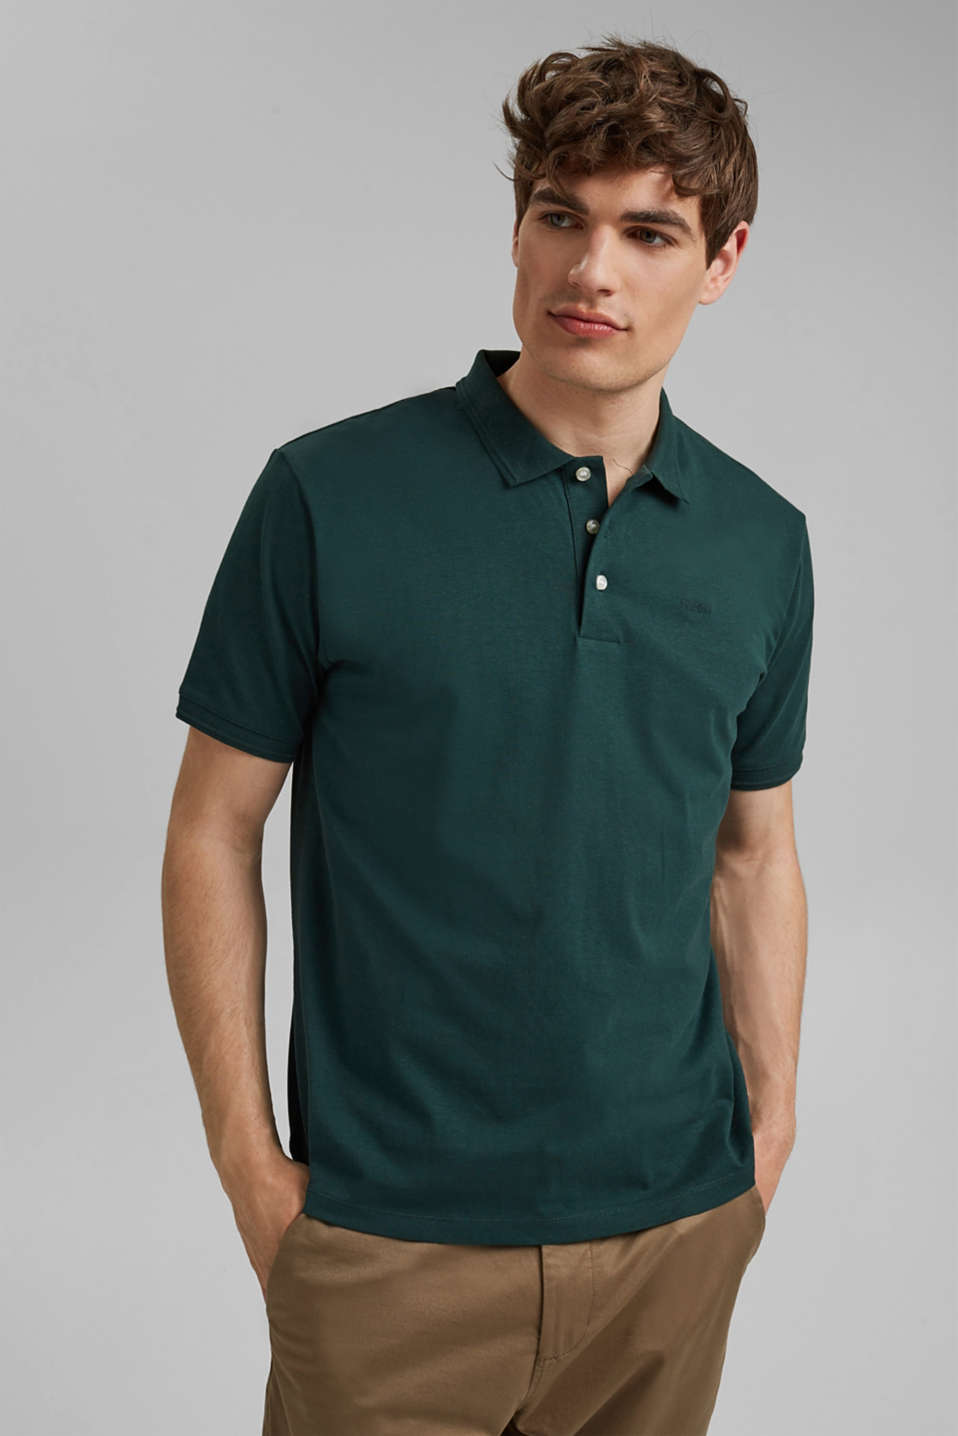 Esprit - With linen/organic cotton: jersey polo shirt